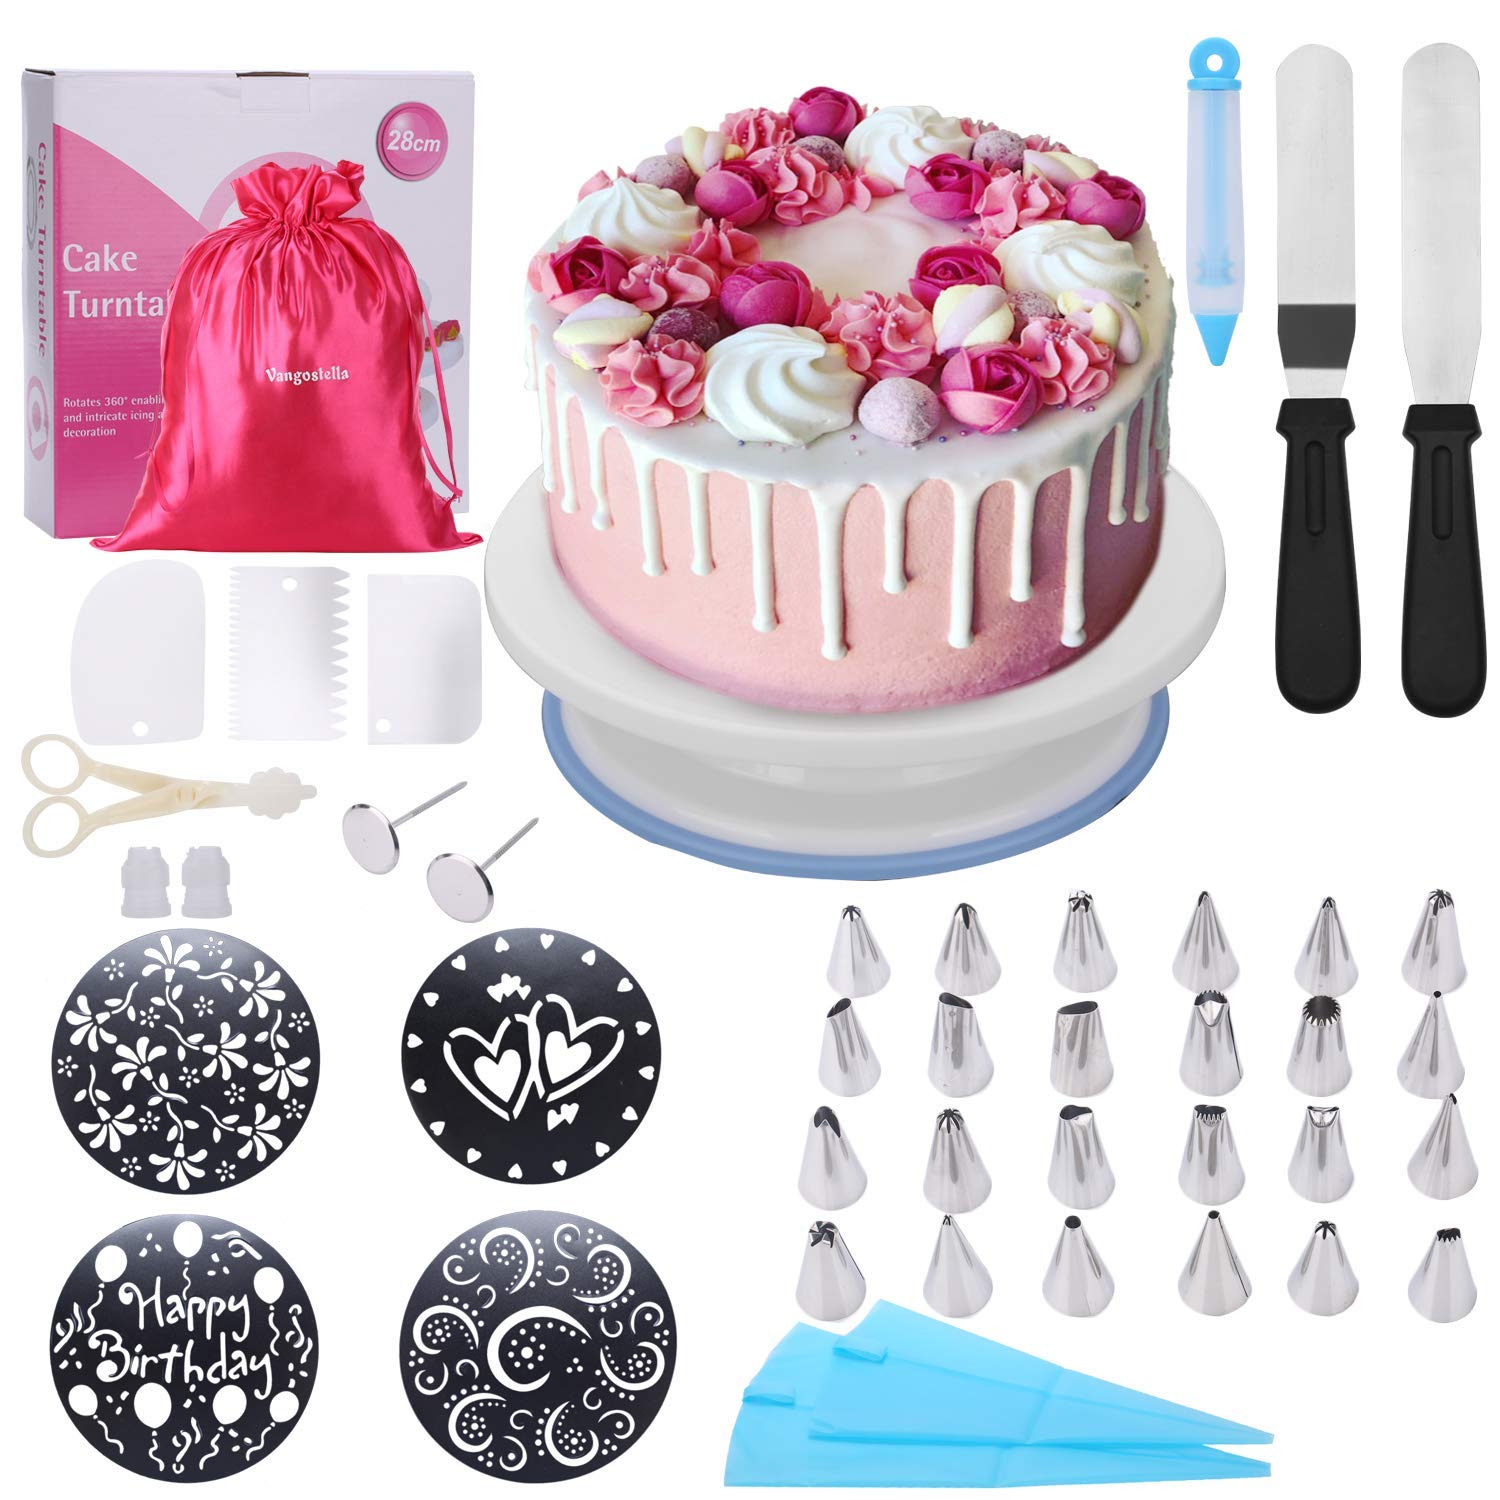 Cake Decorating Supplies with Rotating Cake Turntable Stand for Beginners and Kids(Gift bag included),4 Cake Decorating Stencils,24 Stainless Icing Tips,2 Pastry Bags,3 Cake Scrapers,2 Icing Spatula